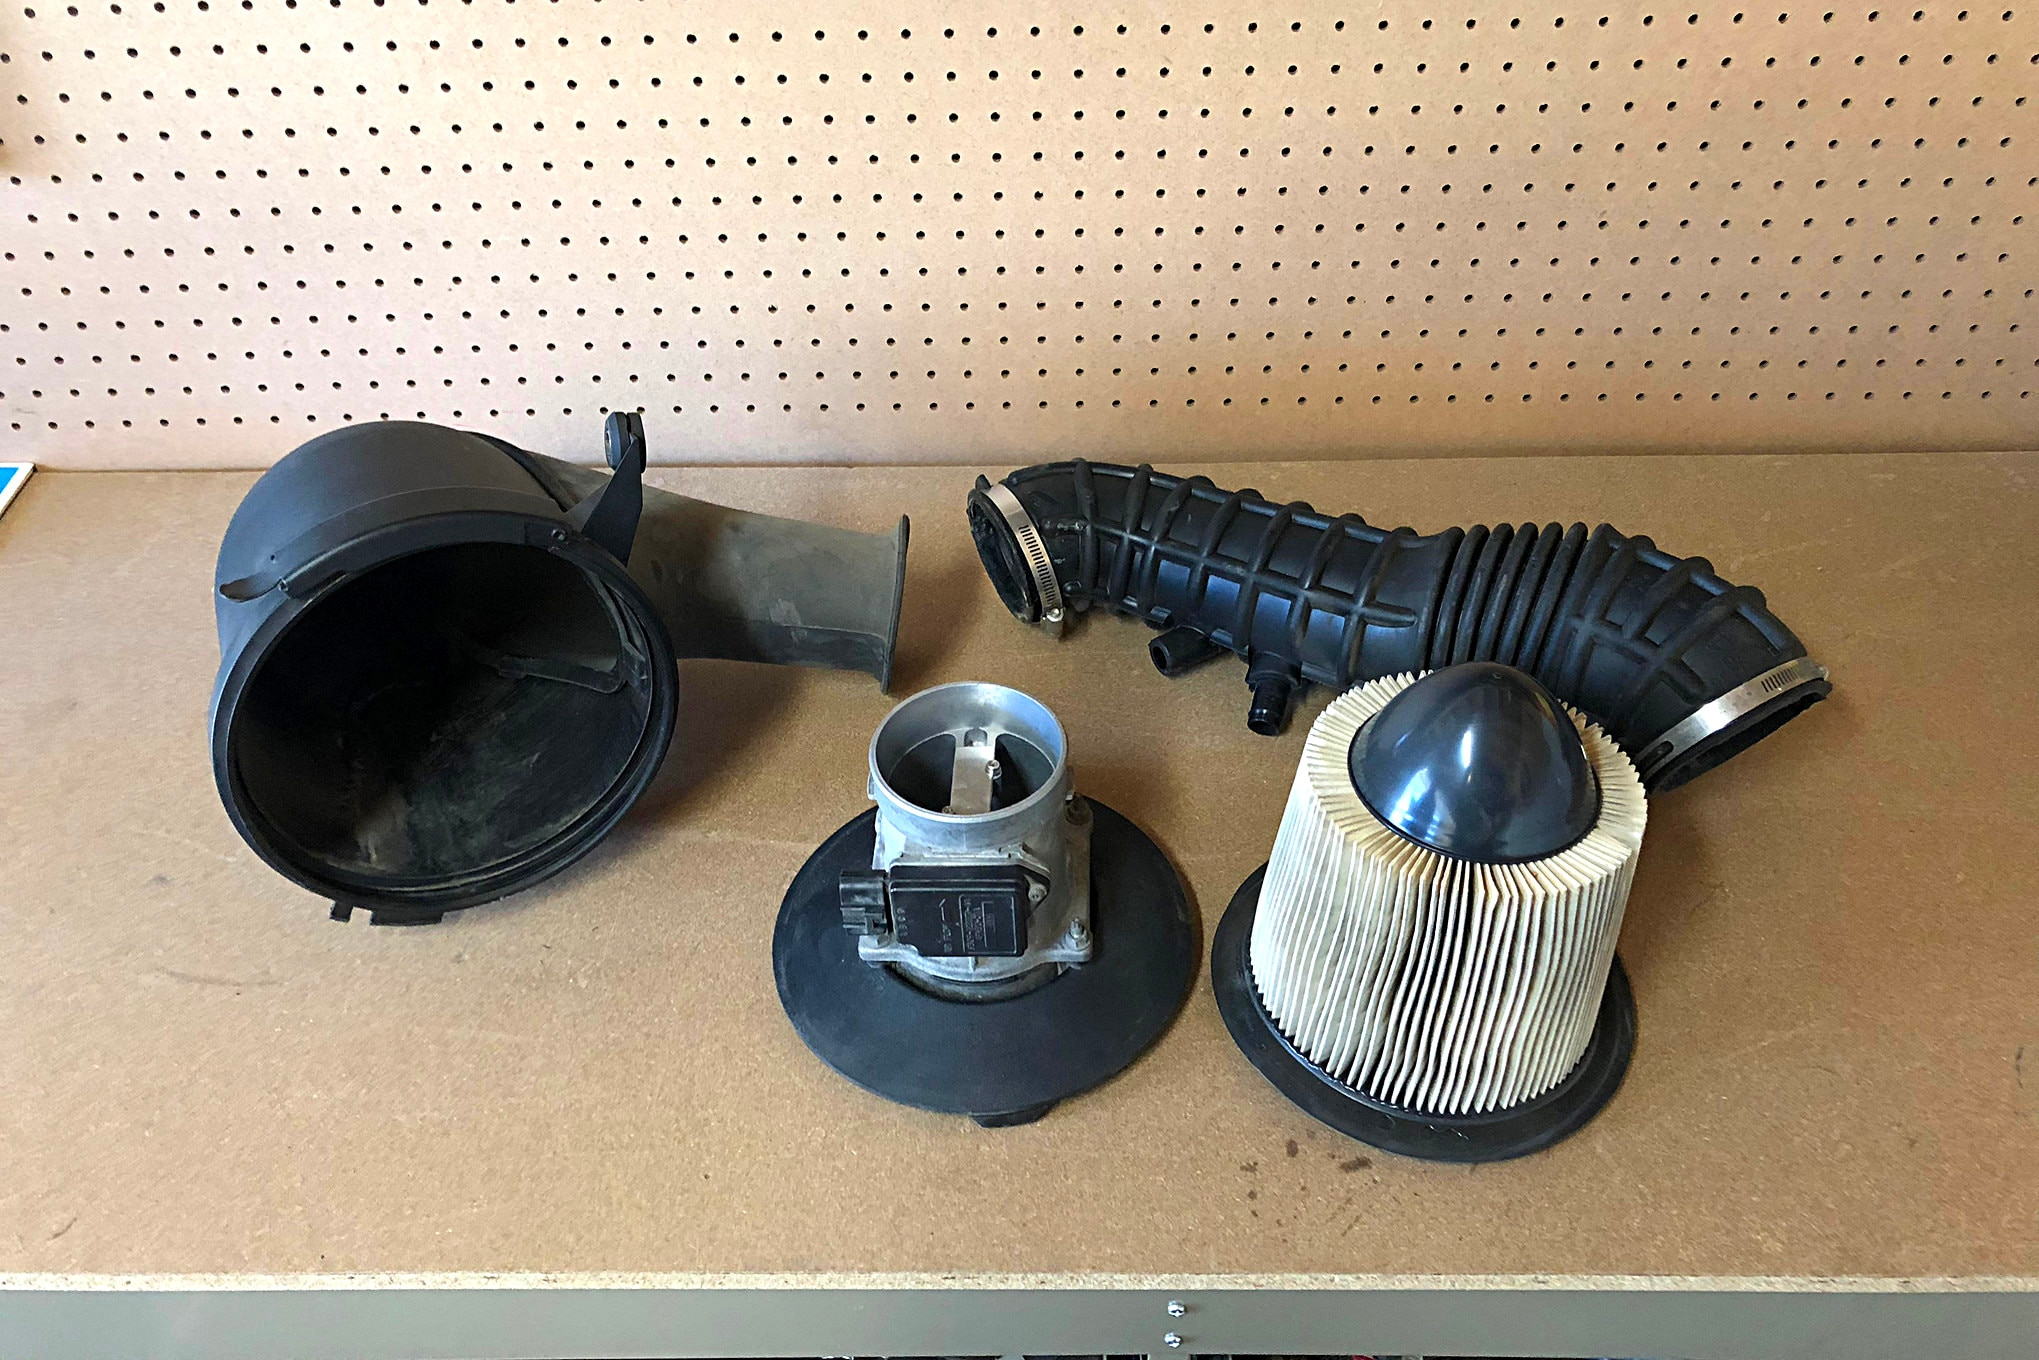 005 1997 Mustang Gt Stock Intake Parts